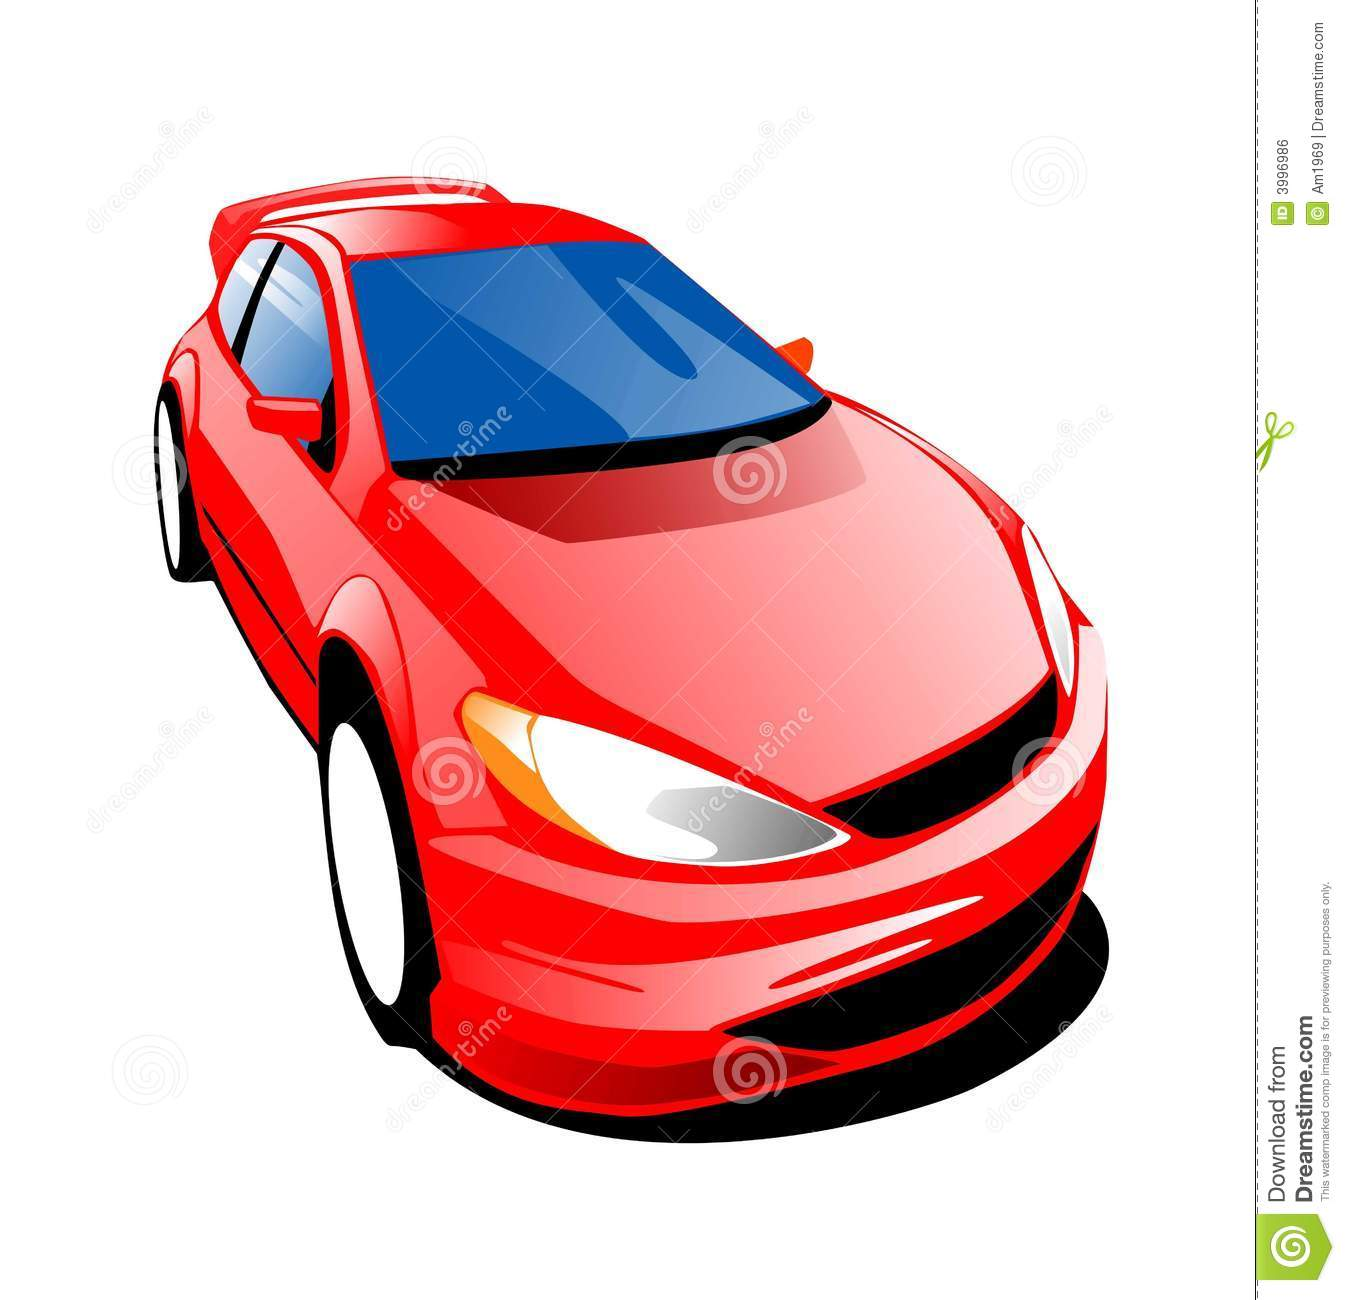 Fast Red Car Stock Illustration. Illustration Of Sports